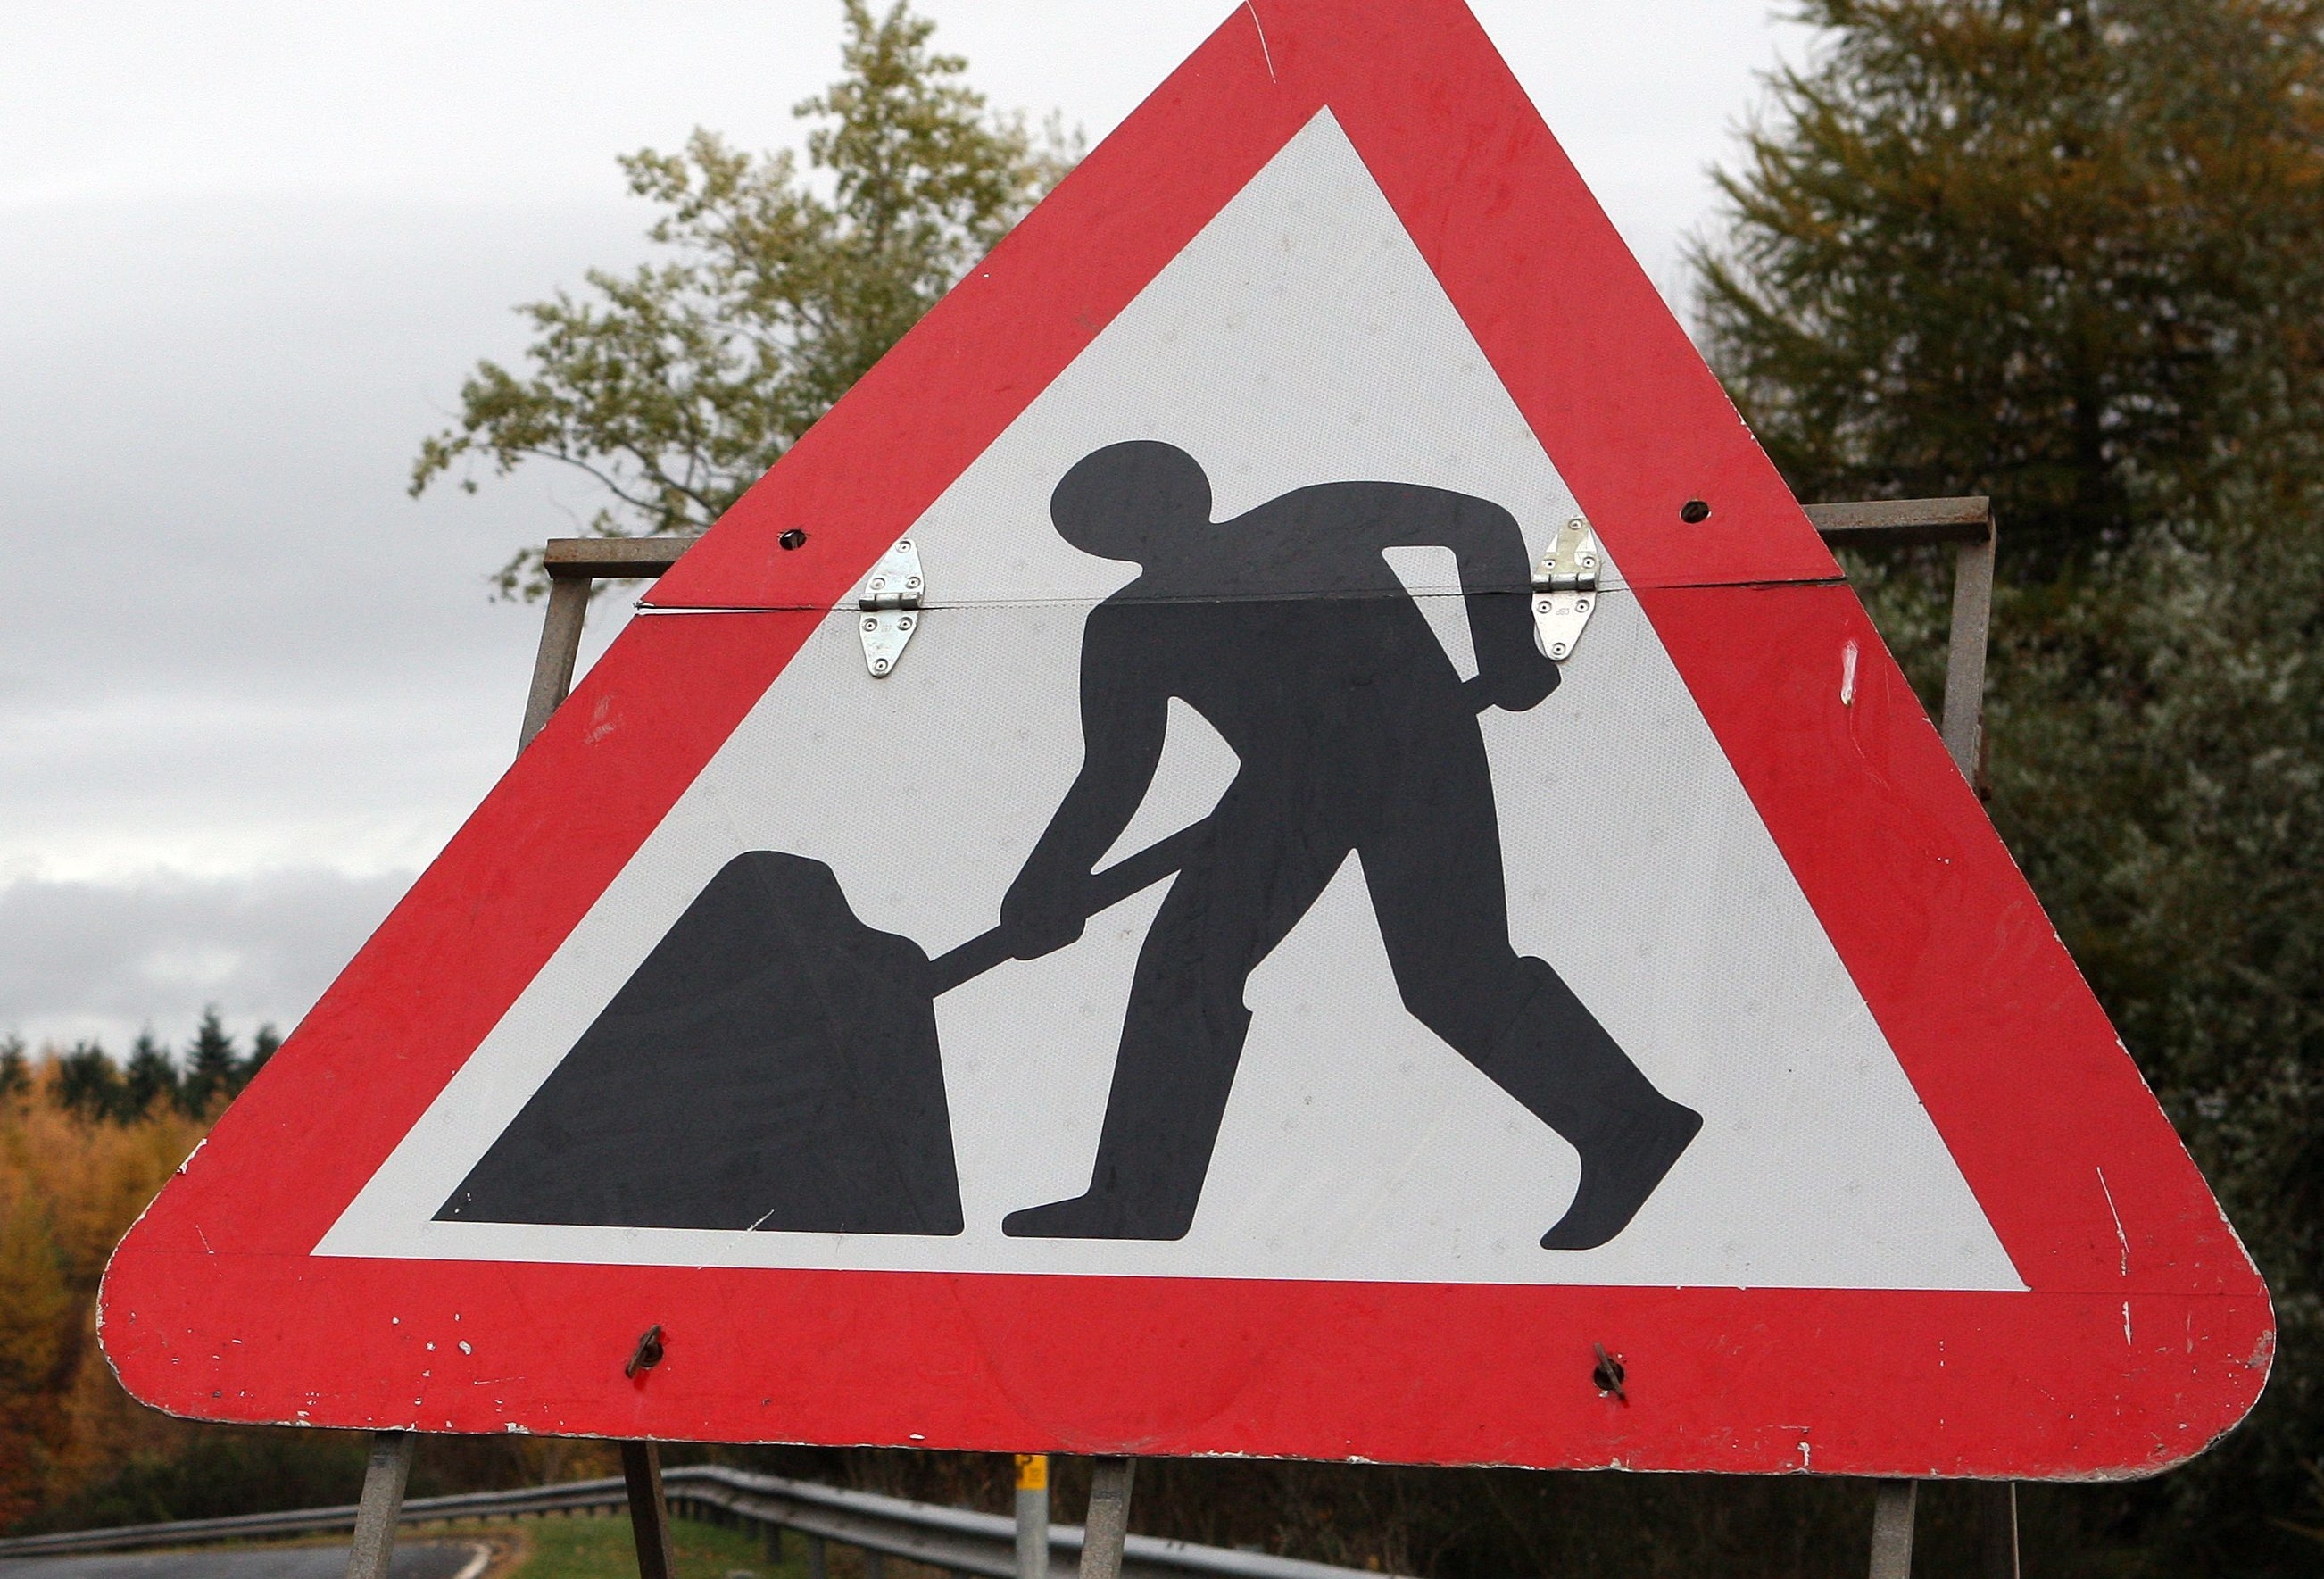 The B8019 Strathtummel Road had to be closed to traffic between 9am and 4pm daily during the repair works.